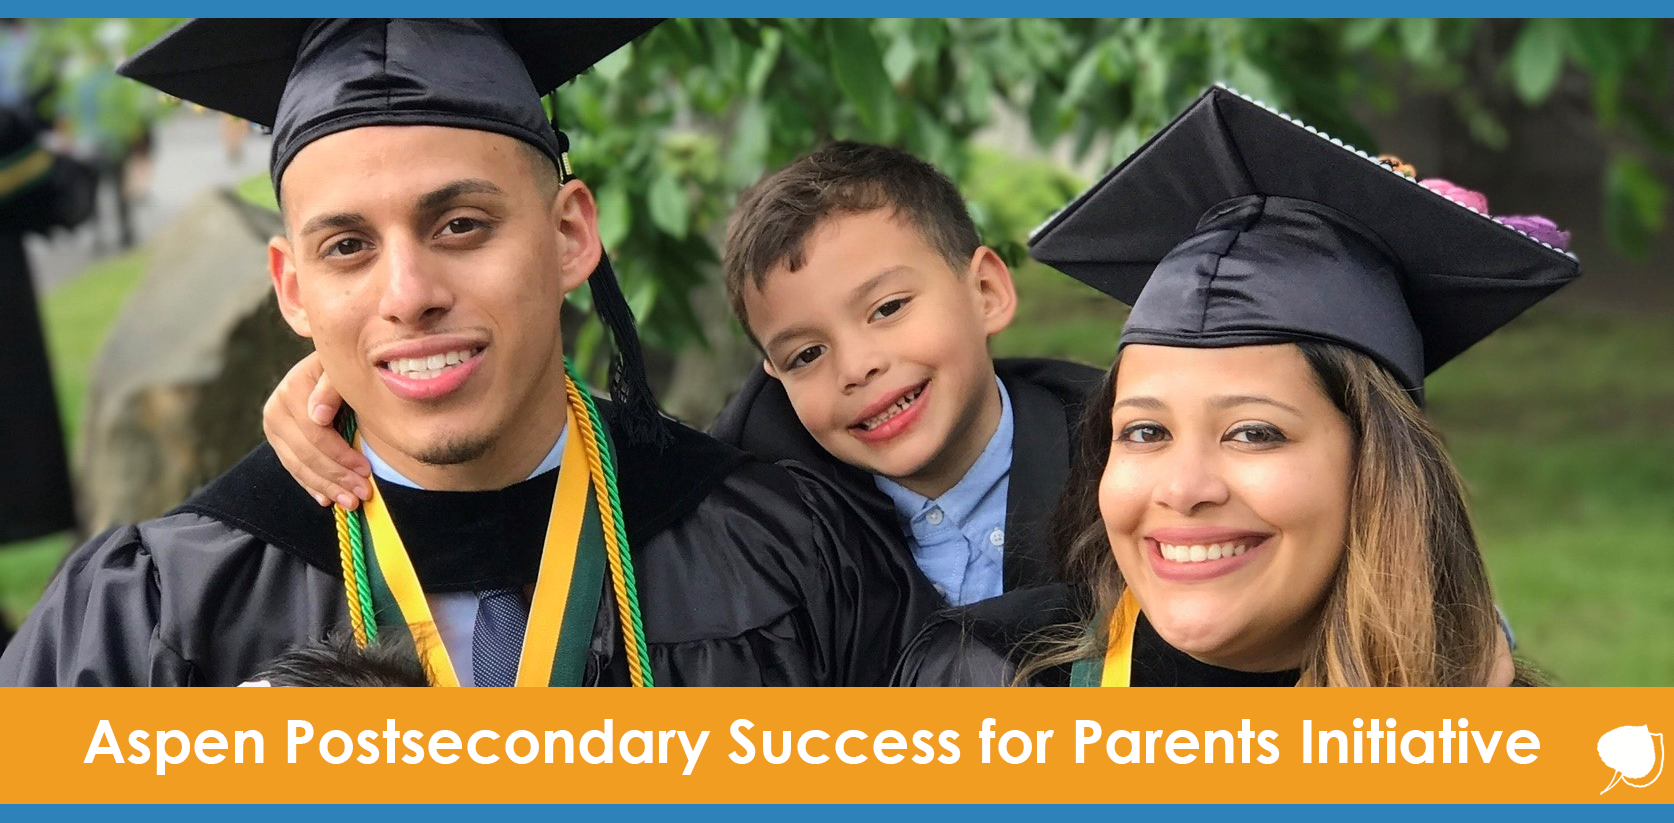 WEBINAR: Achieving Postsecondary Success for Parents: A New Partnership and Report Recommendations